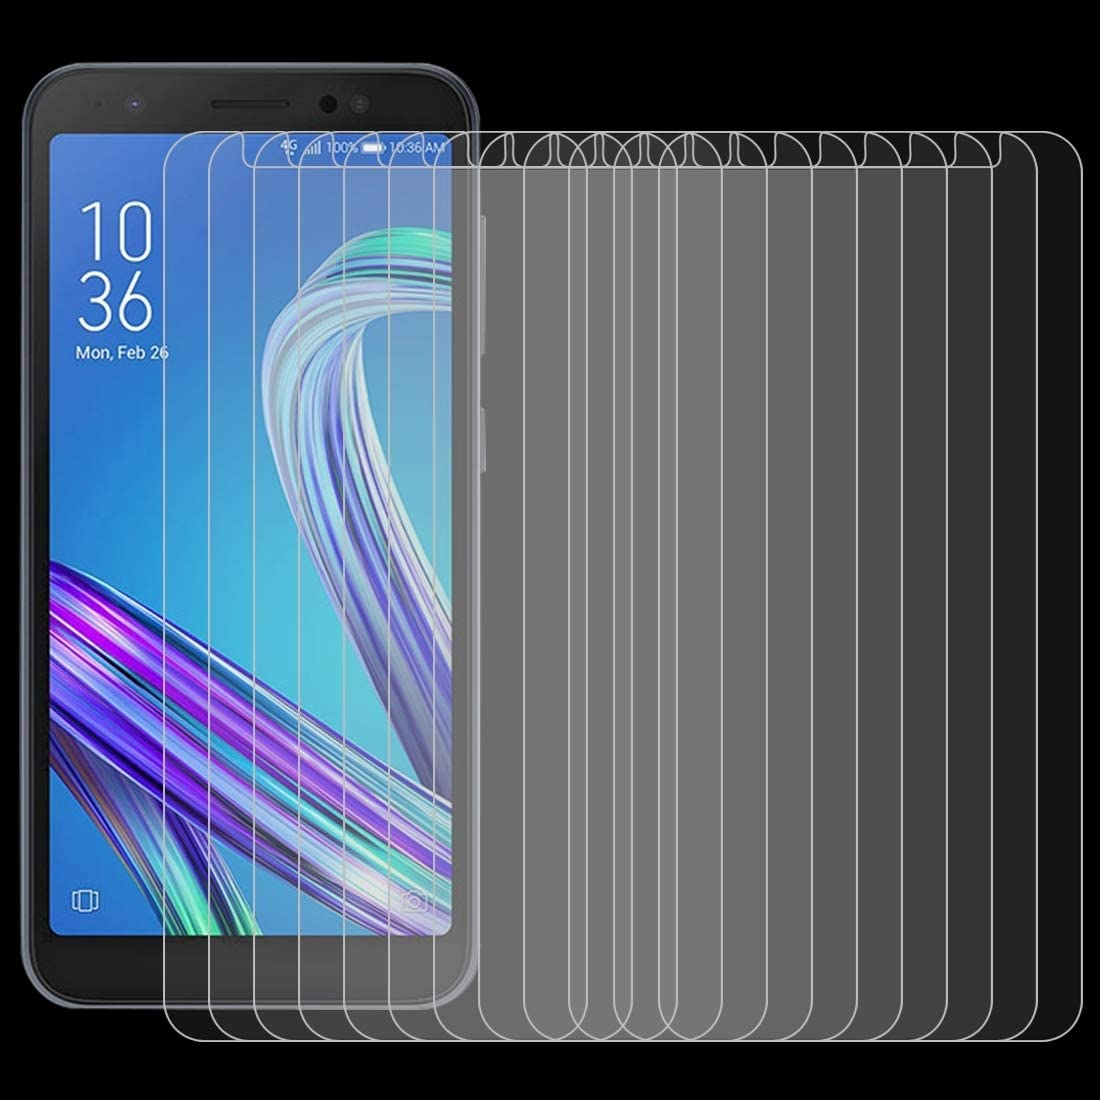 Yangmeijuan Mobile Accessory 100 PCS for Sony Xperia X Compact 0.26mm 9H Surface Hardness 2.5D Explosion-Proof Tempered Glass Screen Film Cell Phone Replacement Parts